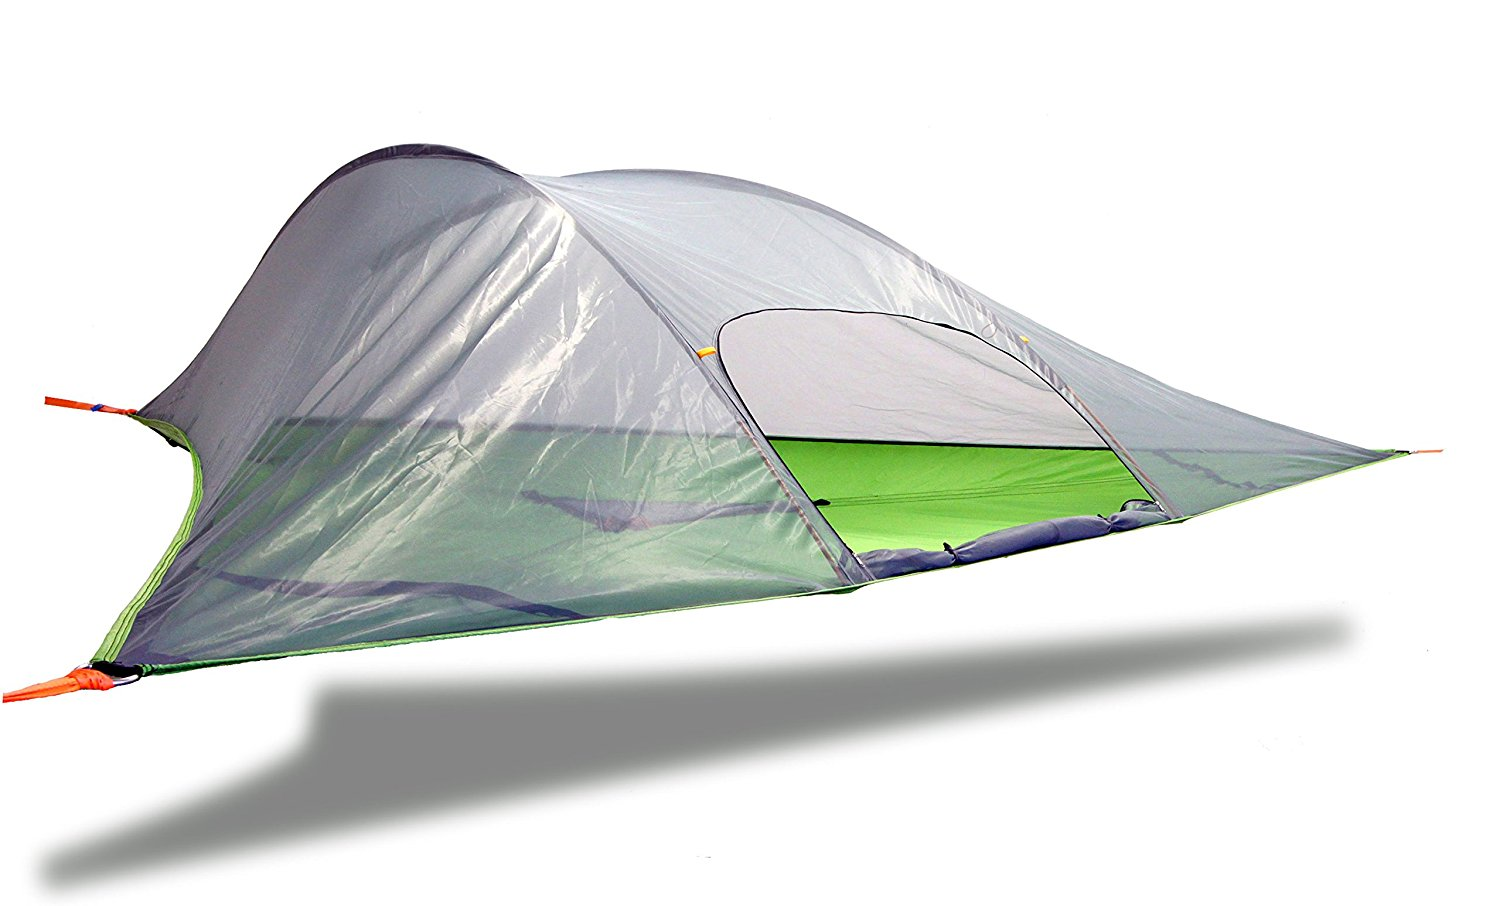 Picture of the tentsile sting ray with the tarp removed